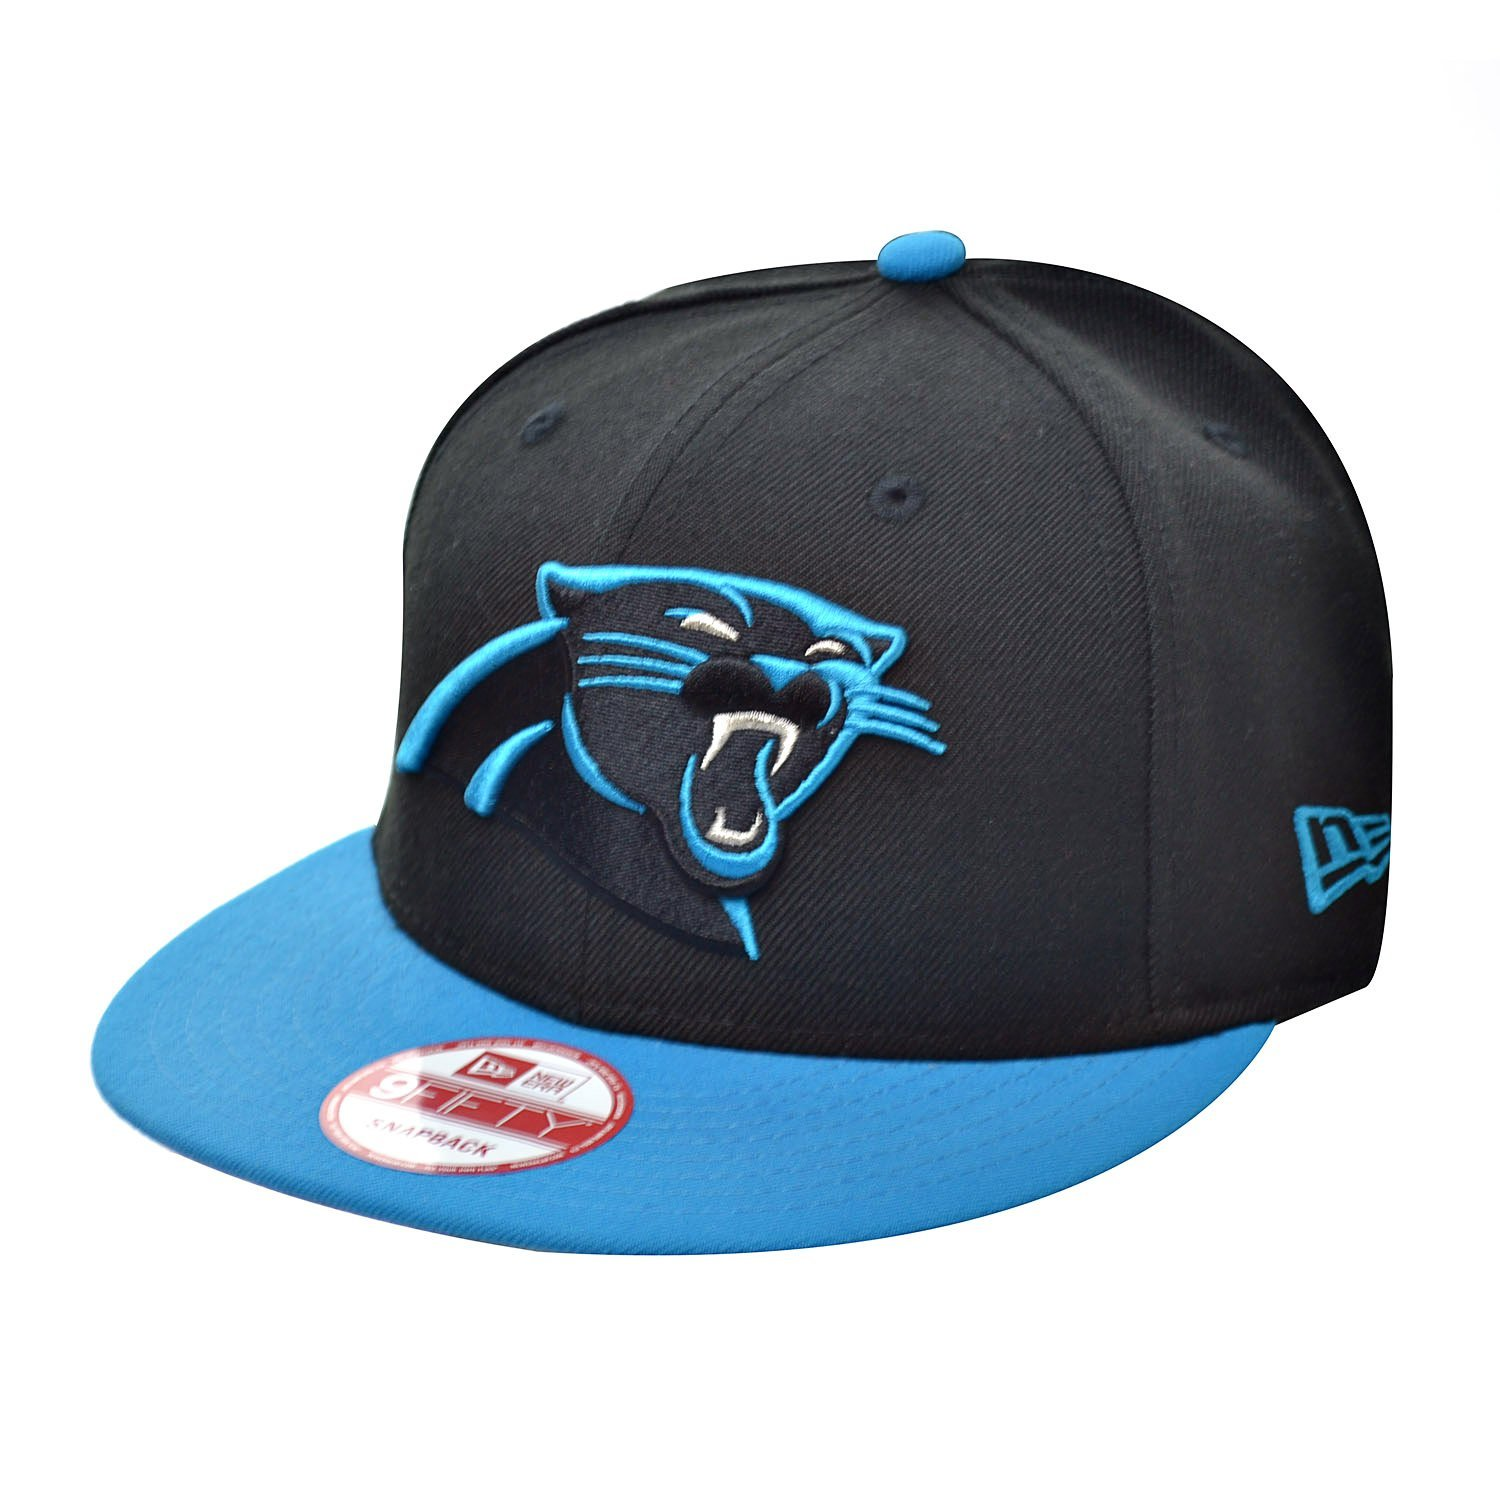 on sale bef8b 93e3b Get Quotations · New Era 950 Carolina Panthers Men s Snapback Hat Cap  Black Sky Blue Silver 70347227